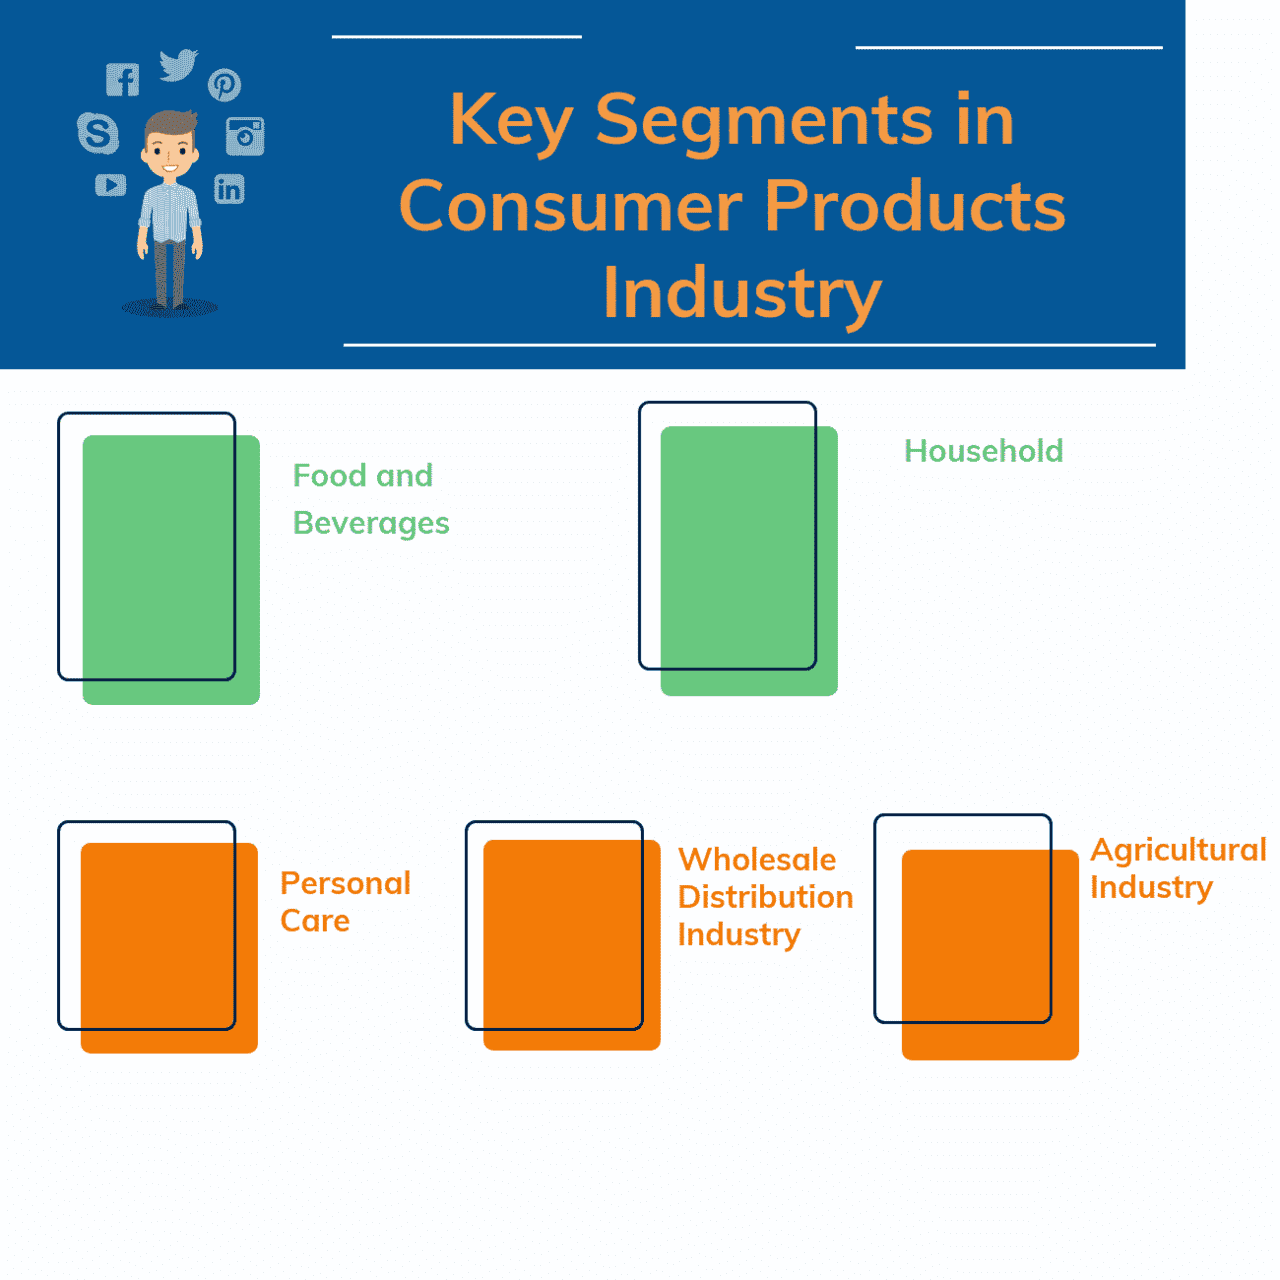 What are the Key Segments in Consumer Products Industry